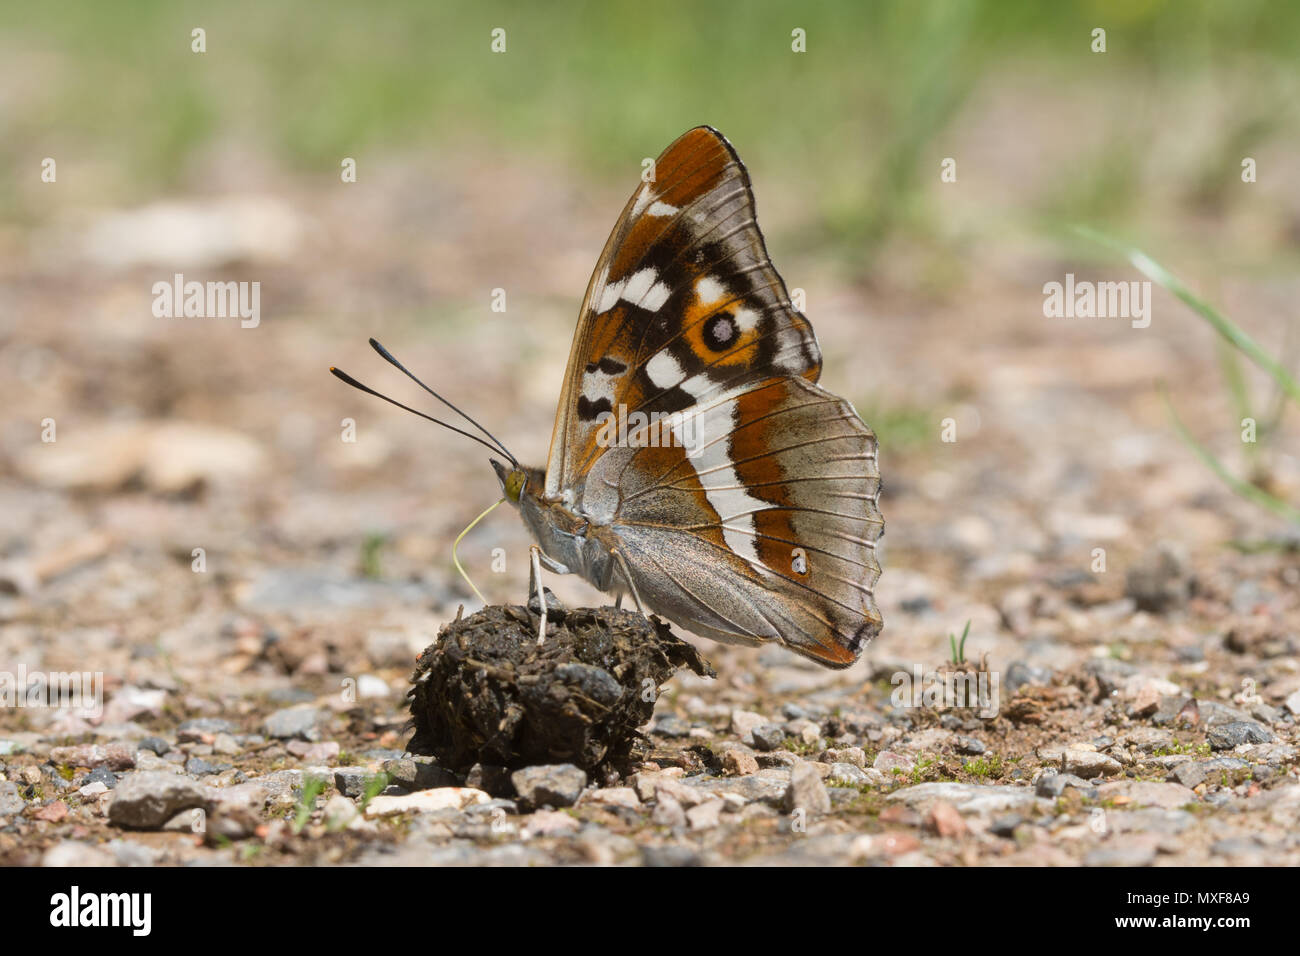 stunning-purple-emperor-butterfly-apatura-iris-collecting-minerals-from-droppings-on-a-woodland-track-in-oaken-wood-chiddingfold-forest-surrey-uk-MXF8A9.jpg